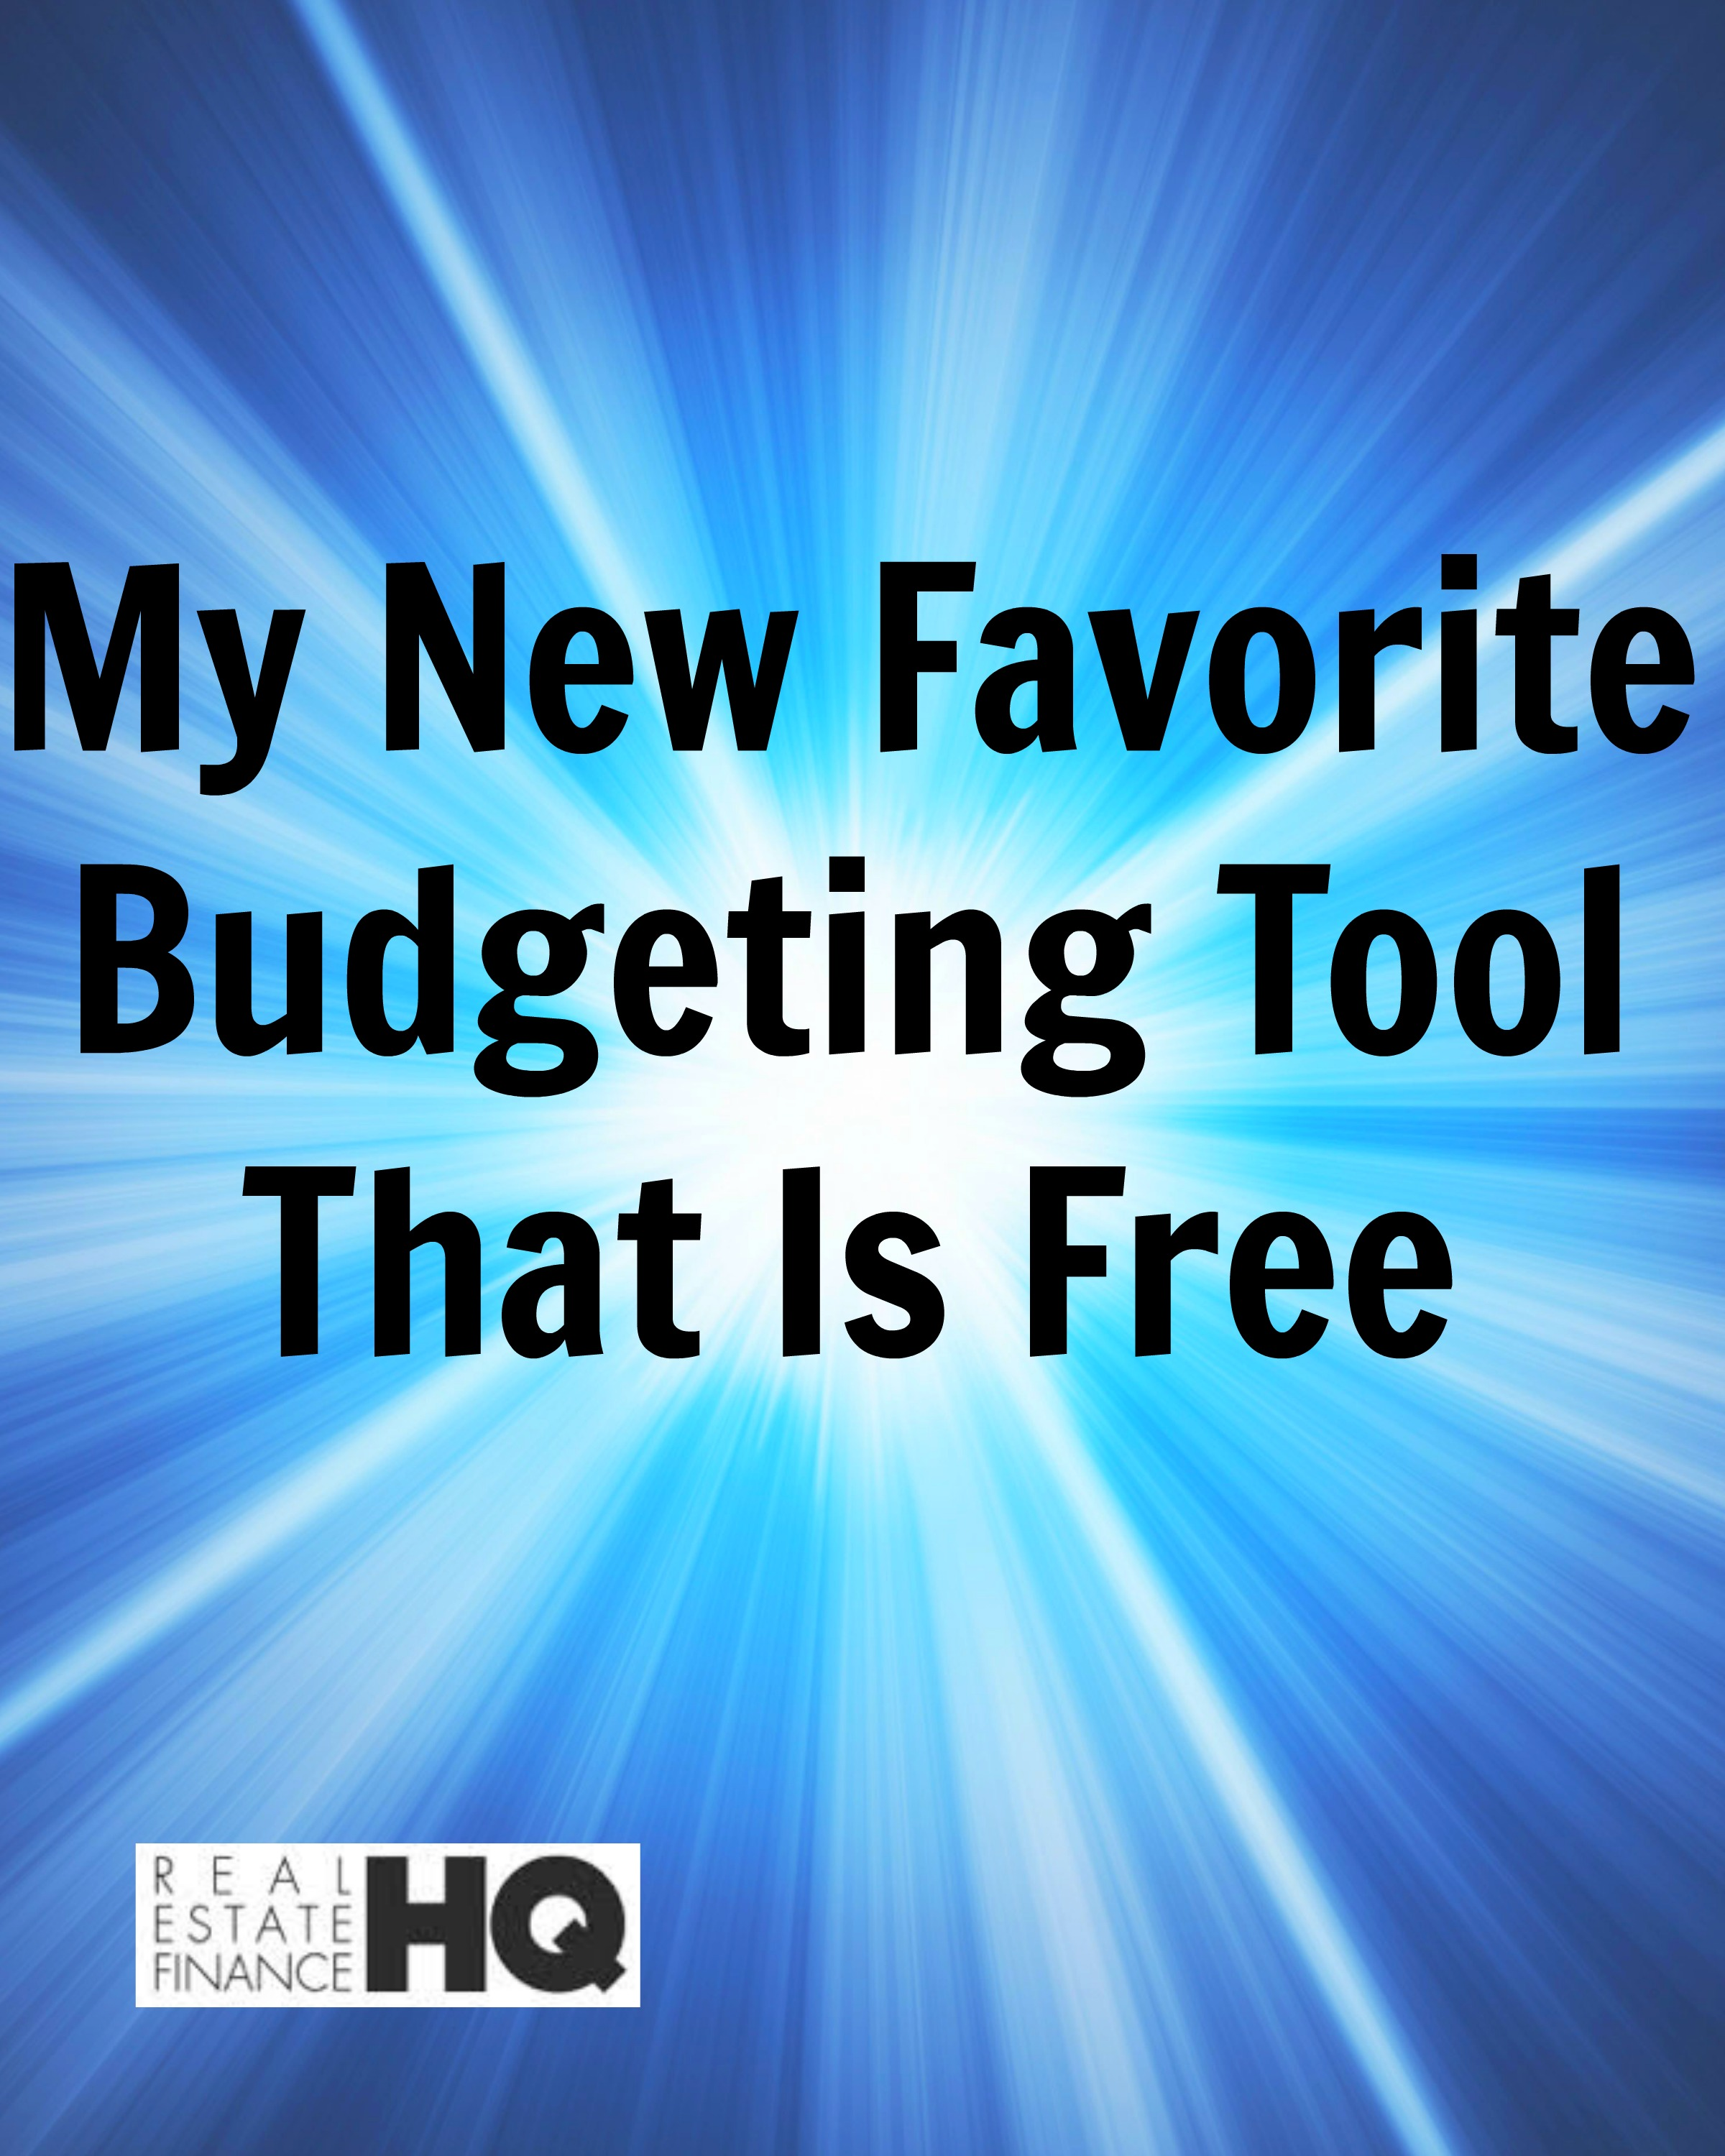 My New Favorite Budgeting Tool That Is Completely Free